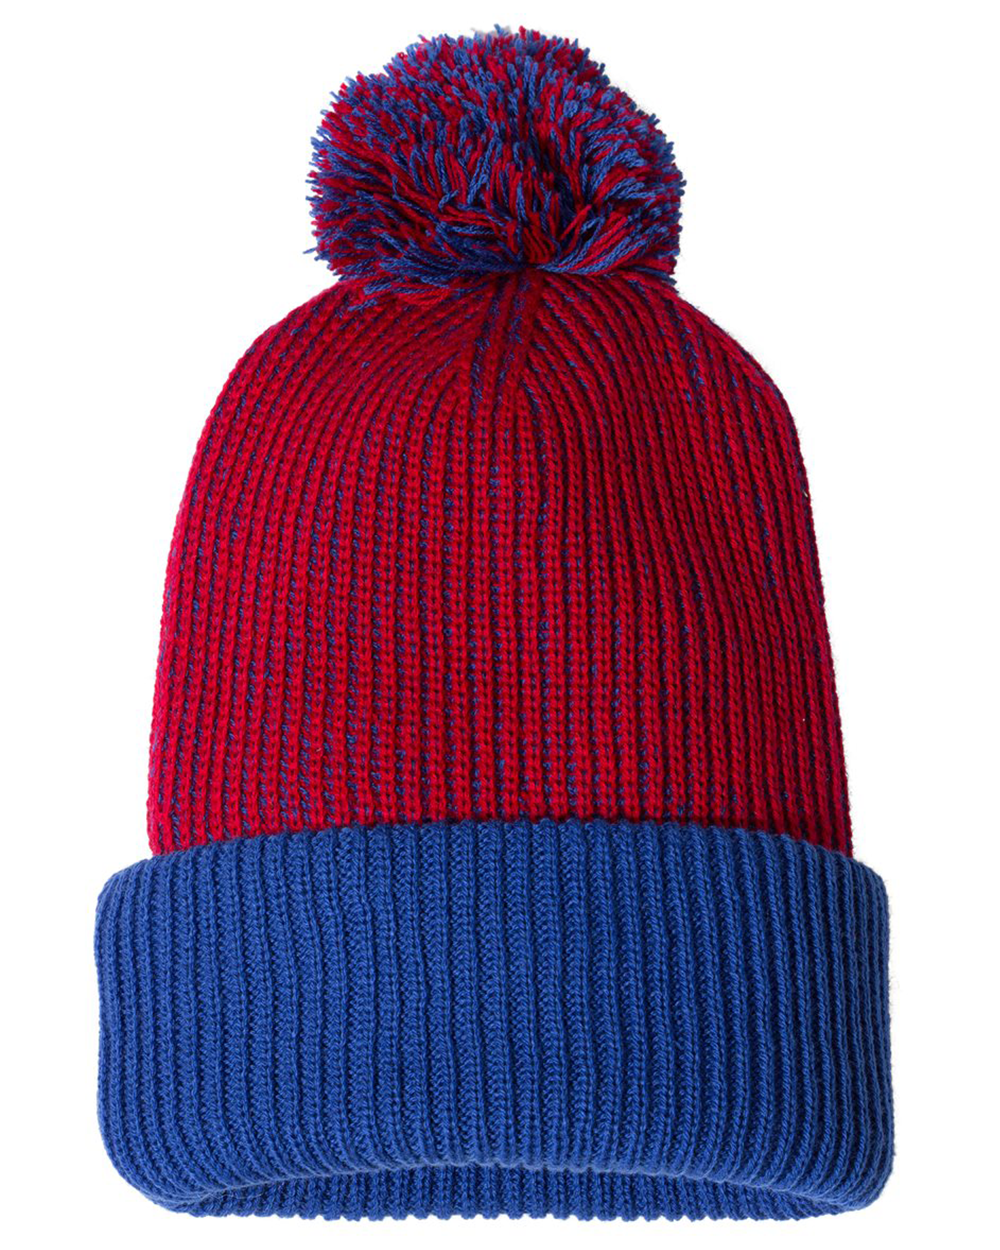 Speckled Knit Toque